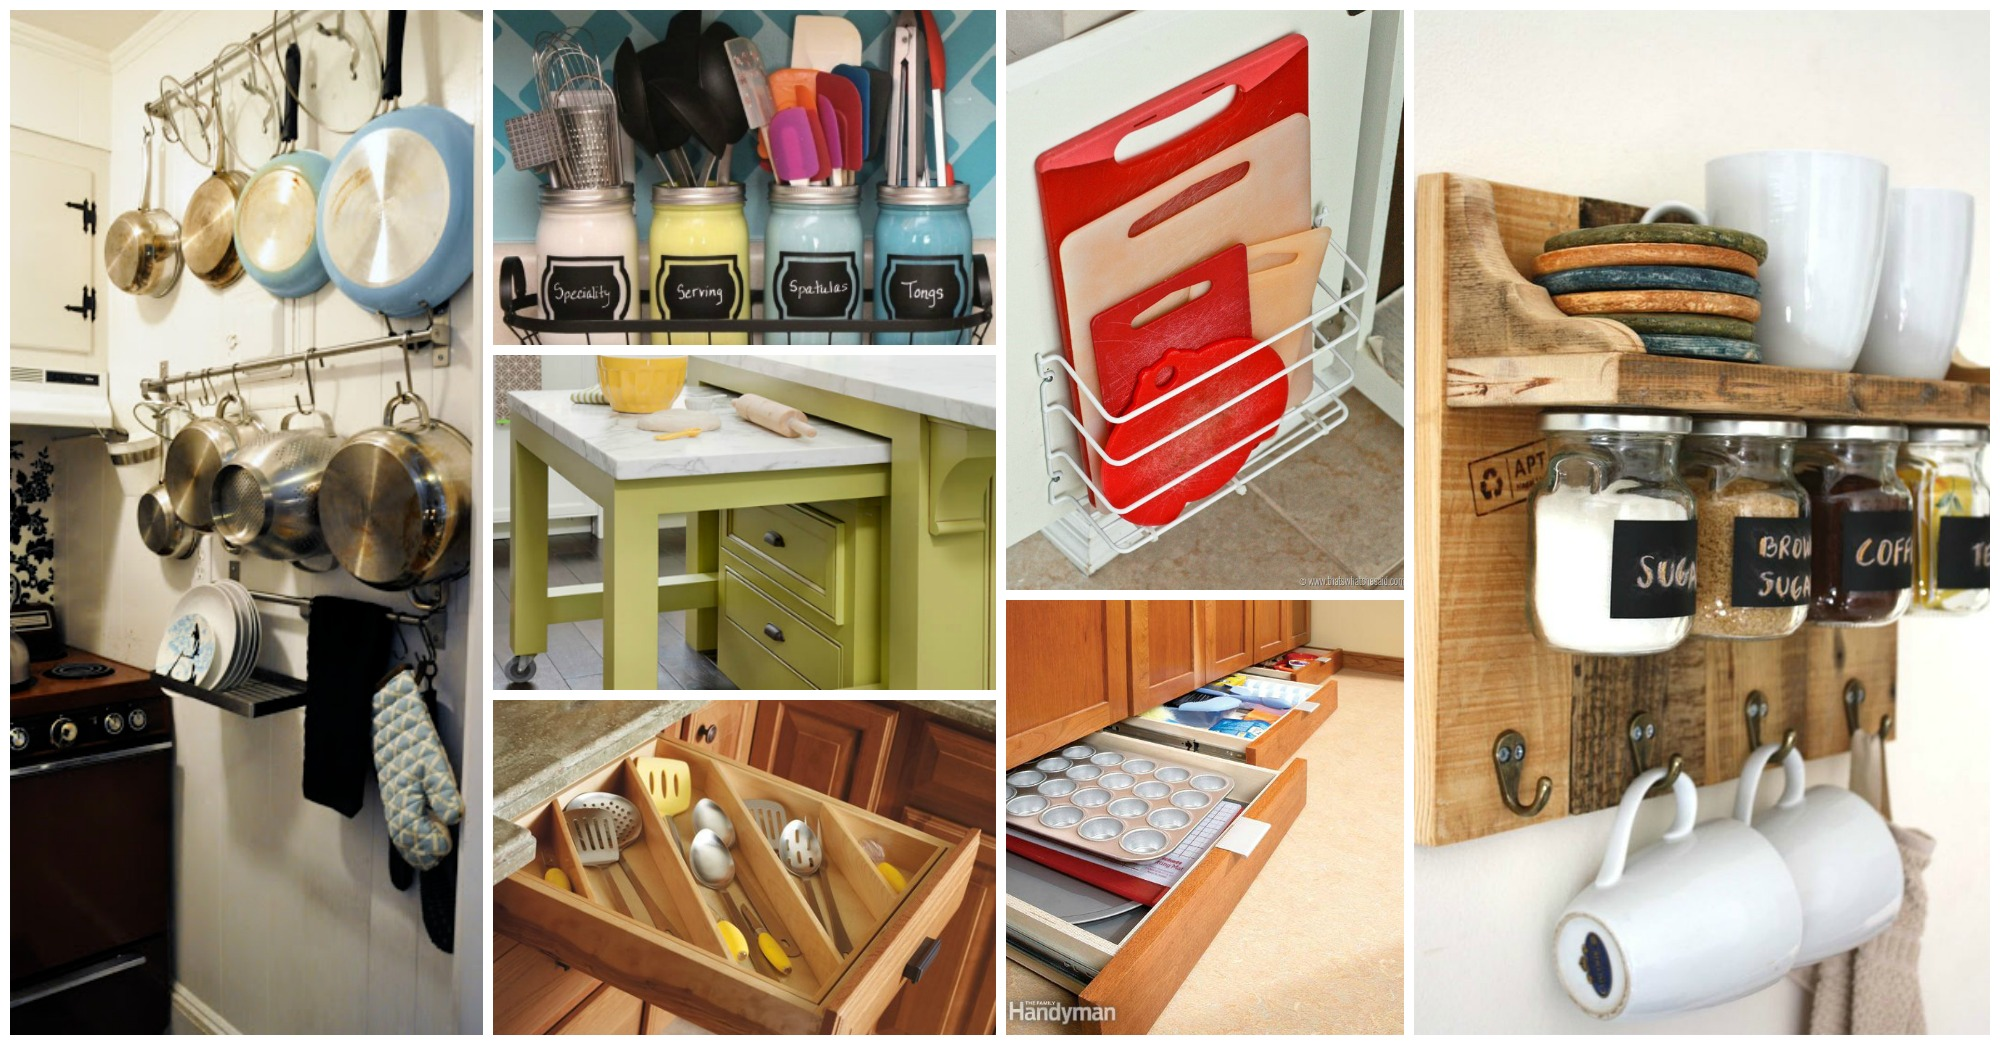 10 Clever Ideas to Squeeze a Little Extra Storage Out of Your Small Kitchen